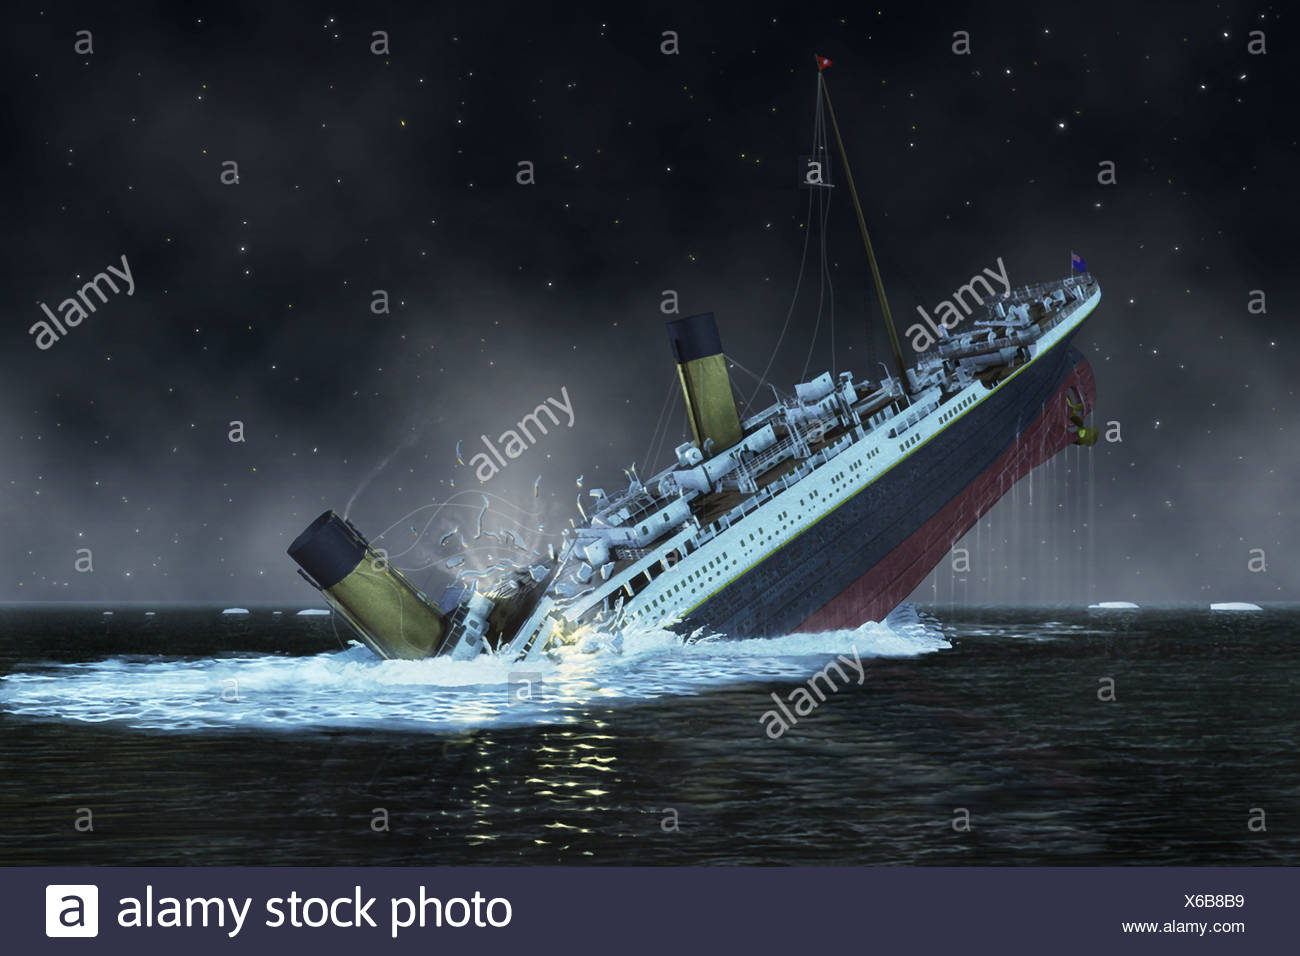 The bow of the Titanic plunges into the North Atlantic Ocean. - Stock Image